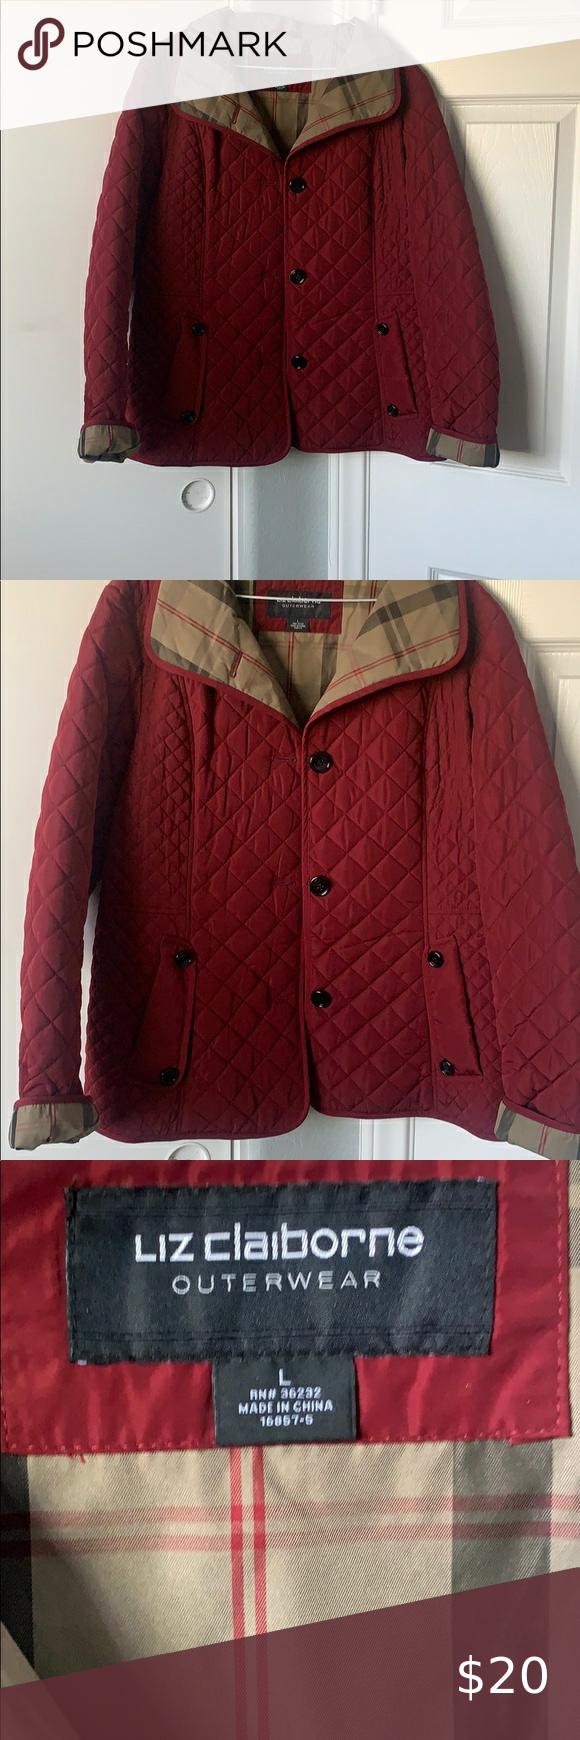 Nice Red Daily Jacket Clothes Design Cool Jackets Fashion Design [ 1740 x 580 Pixel ]